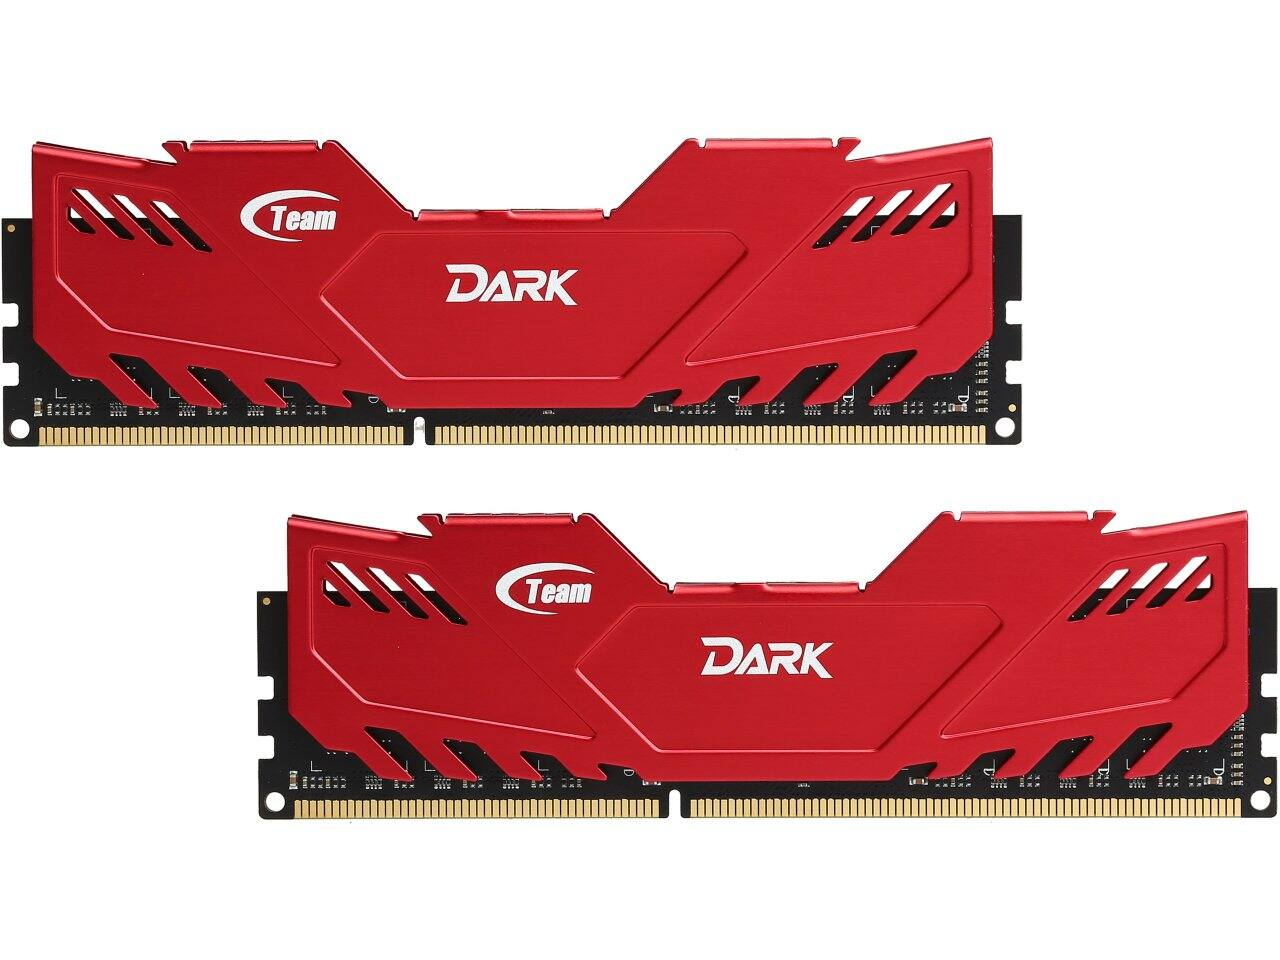 16 GB (2 x 8 GB) Team Dark 240-Pin DDR3 2400 Desktop Memory Kit for $47.99, 16 GB (2 x 8 GB) G.SKILL Aegis 288-Pin DDR4 2400 Desktop Memory Kit for $48.99 & More @ Newegg.com